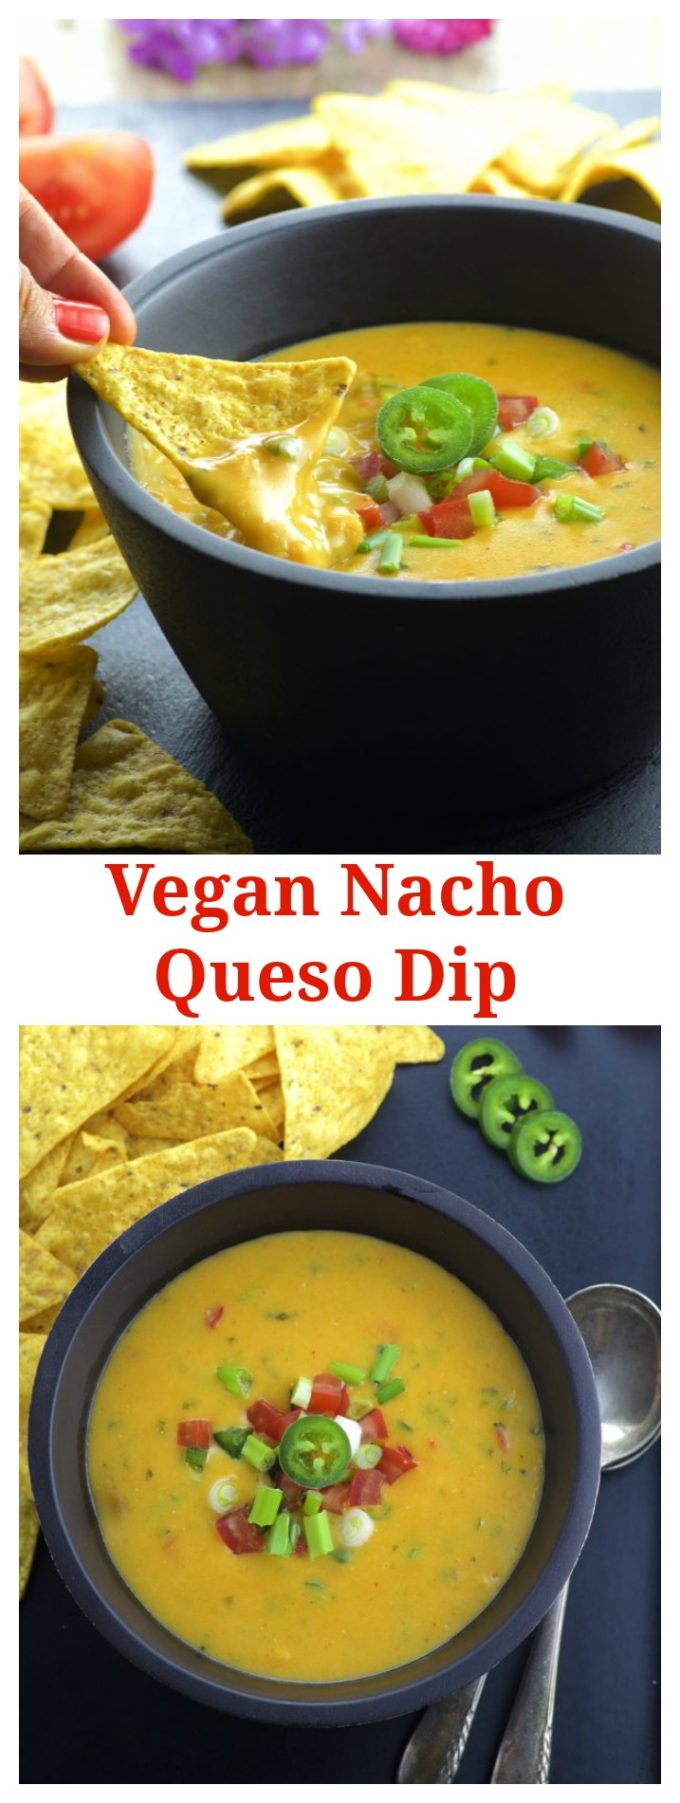 This Vegan Nacho Queso Dip will be a hit on your next party!